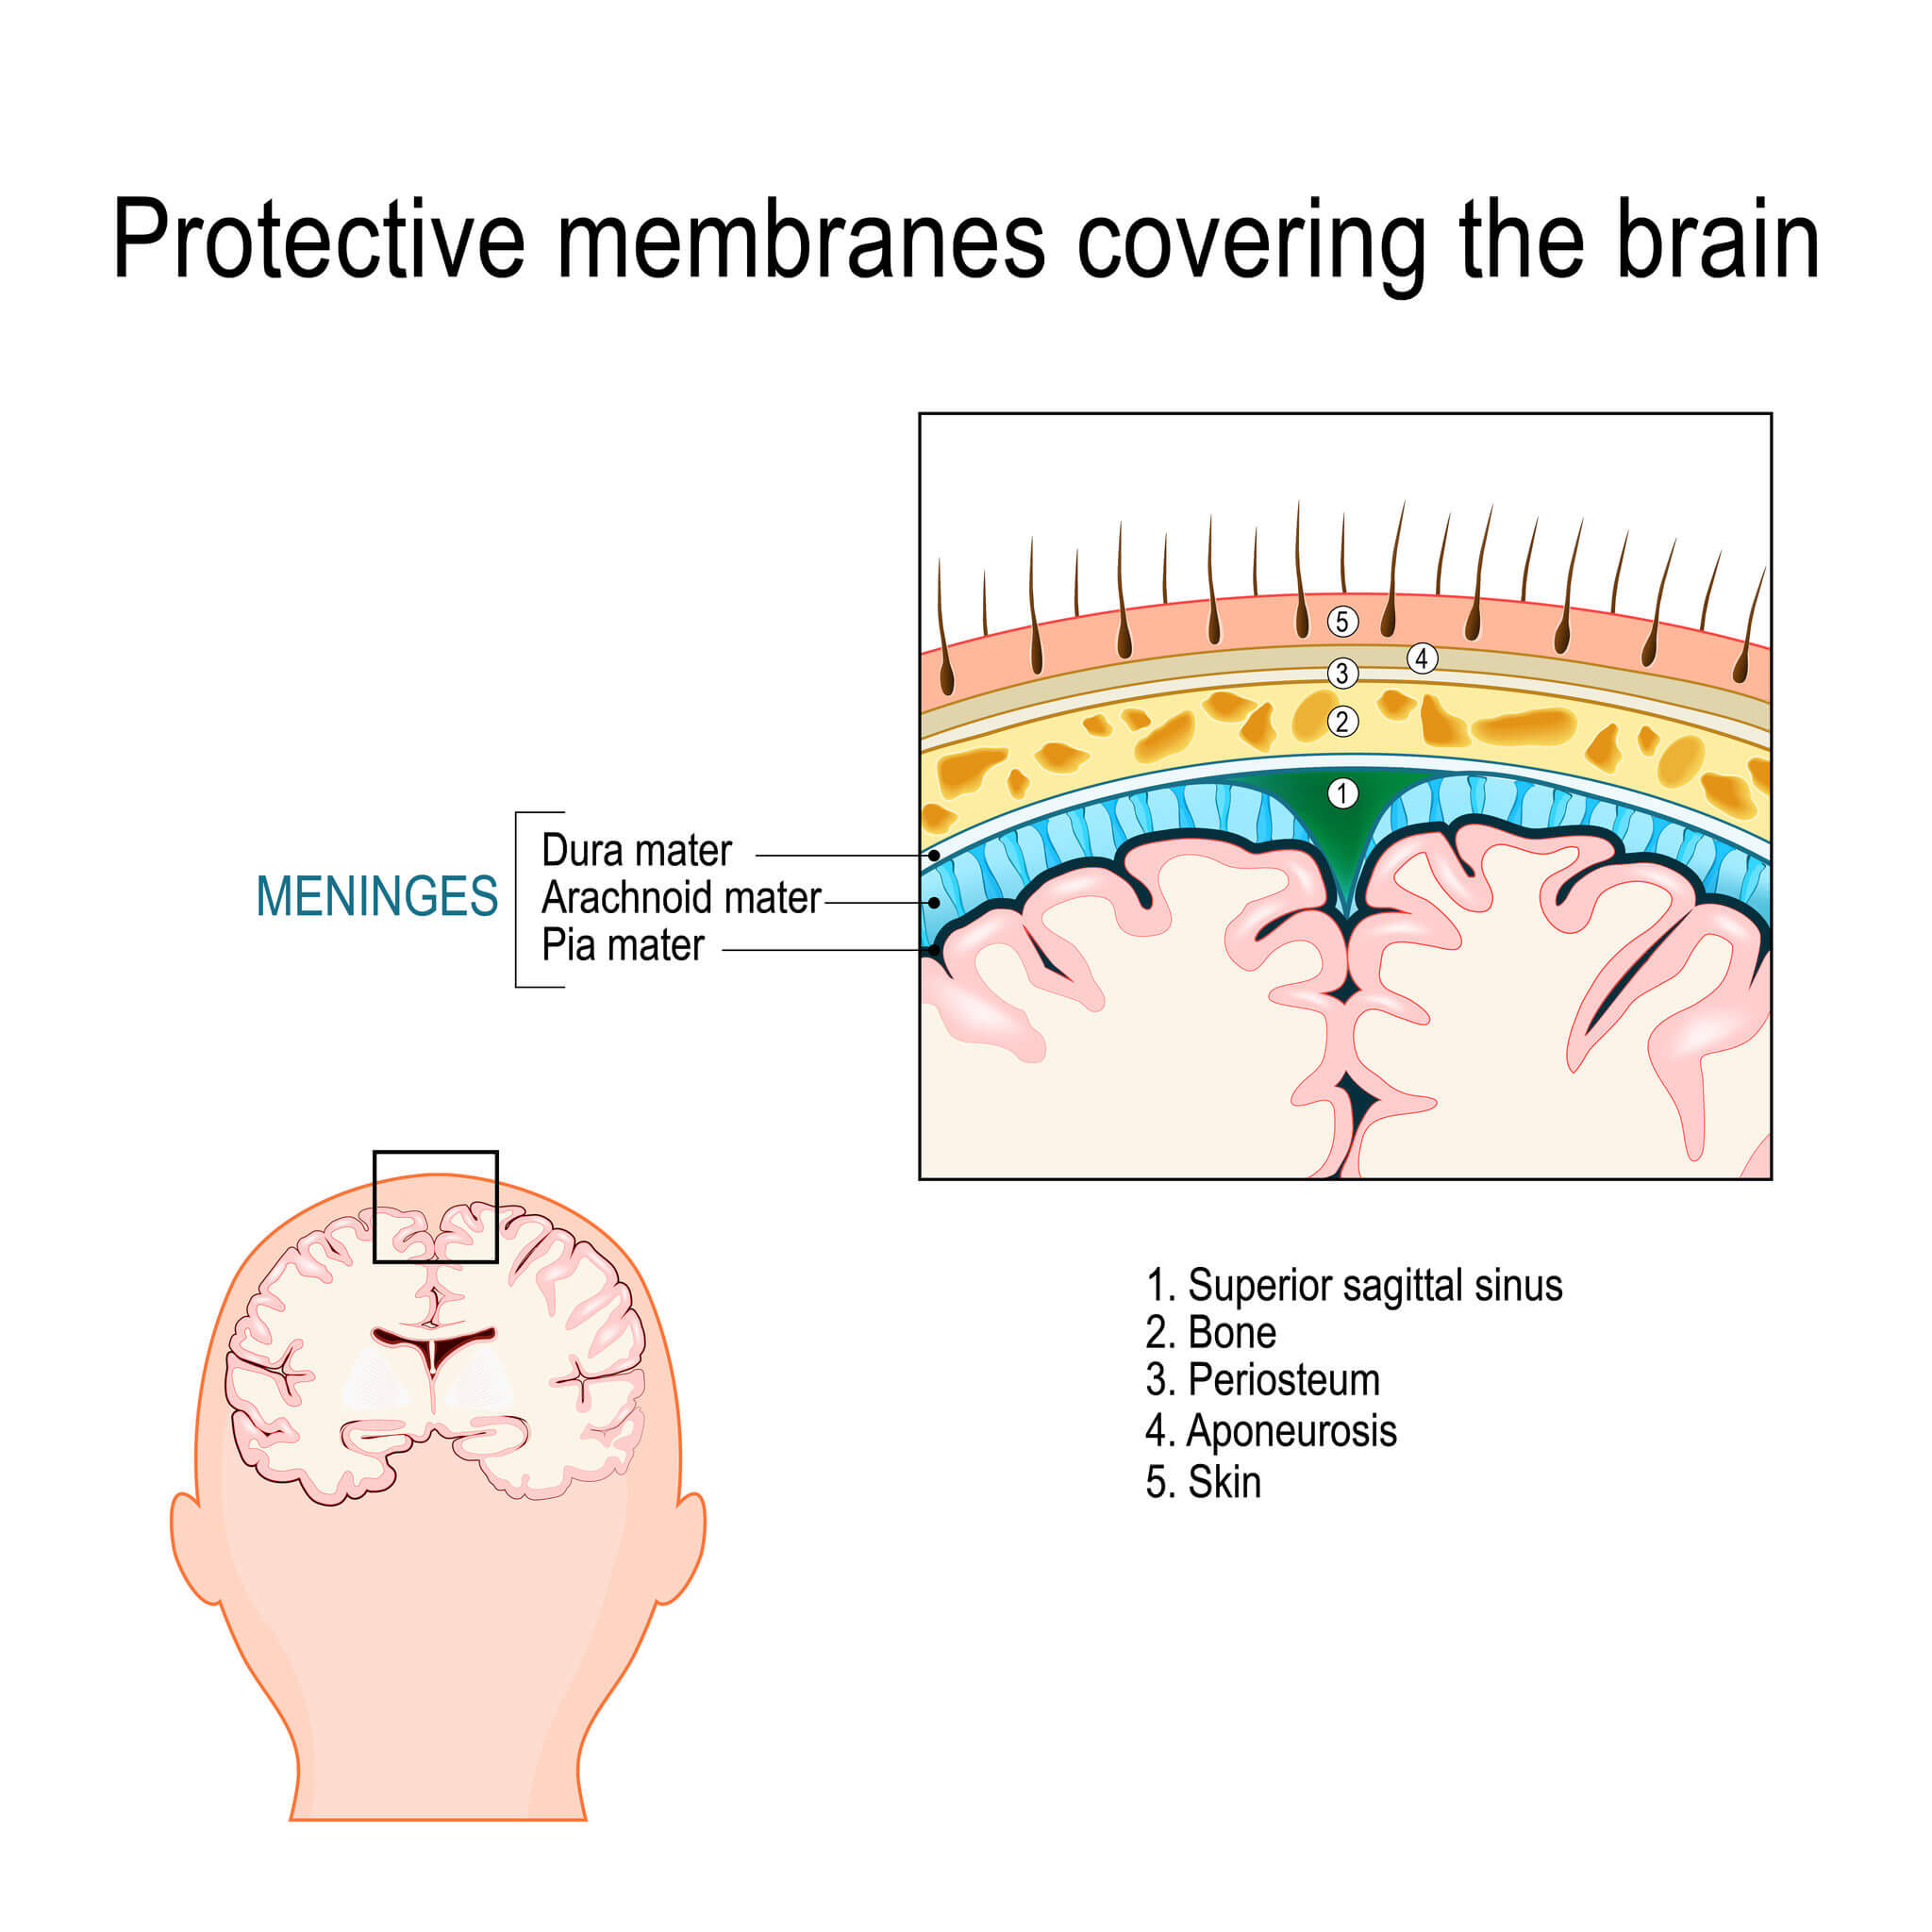 There are three meninges: dura mater, pia mater, and arachnoid mater.